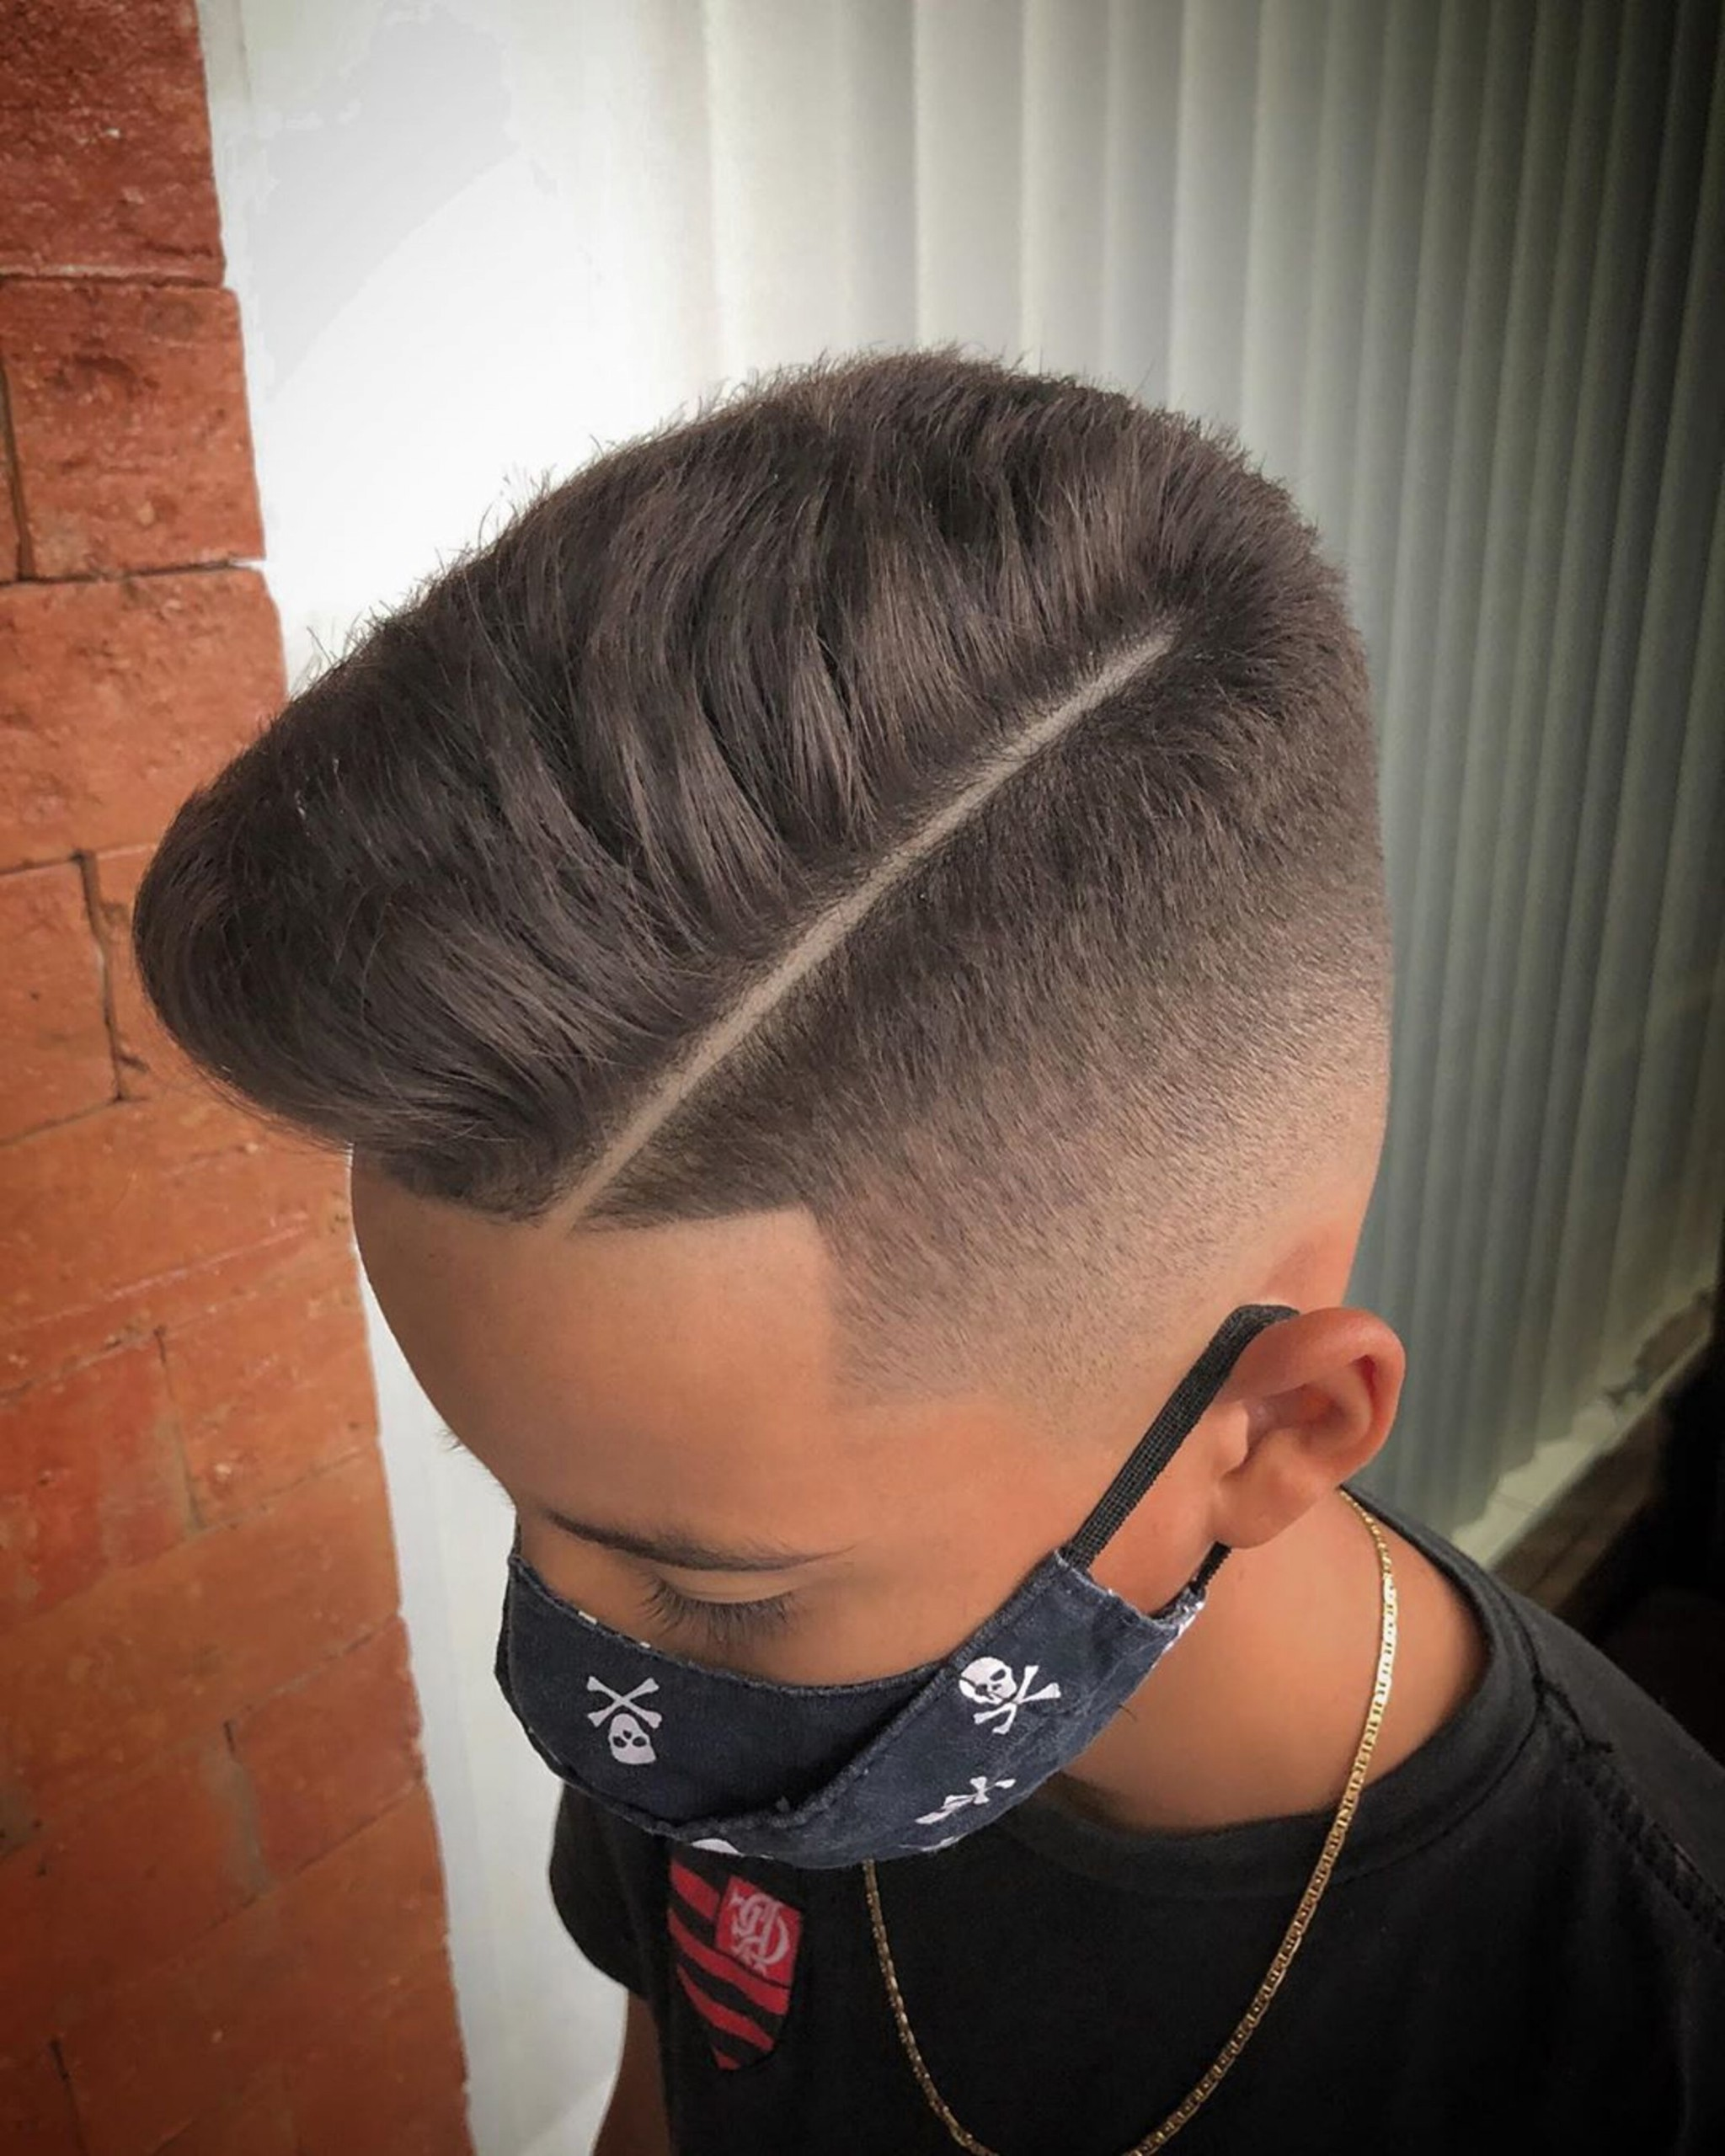 A comb-over faded haircut for boys.